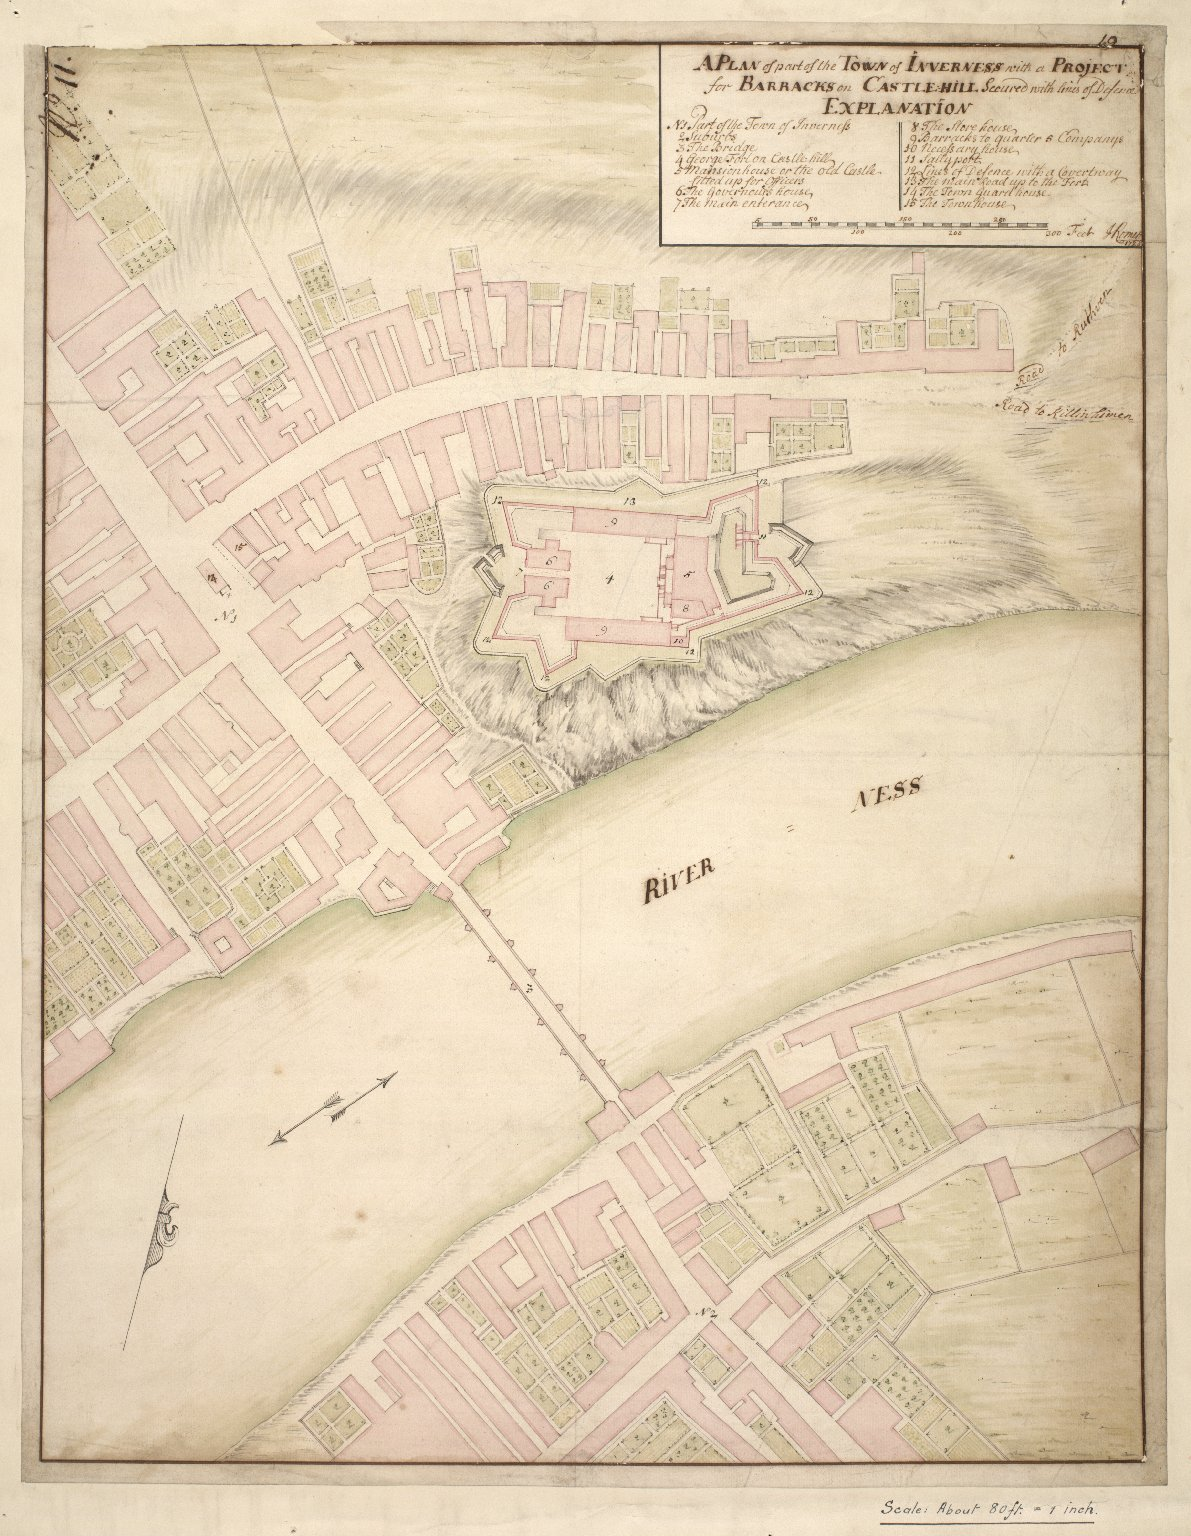 A plan of the Town of Inverness with a project for barracks on Castle Hill, secured with lines of defence [1 of 1]